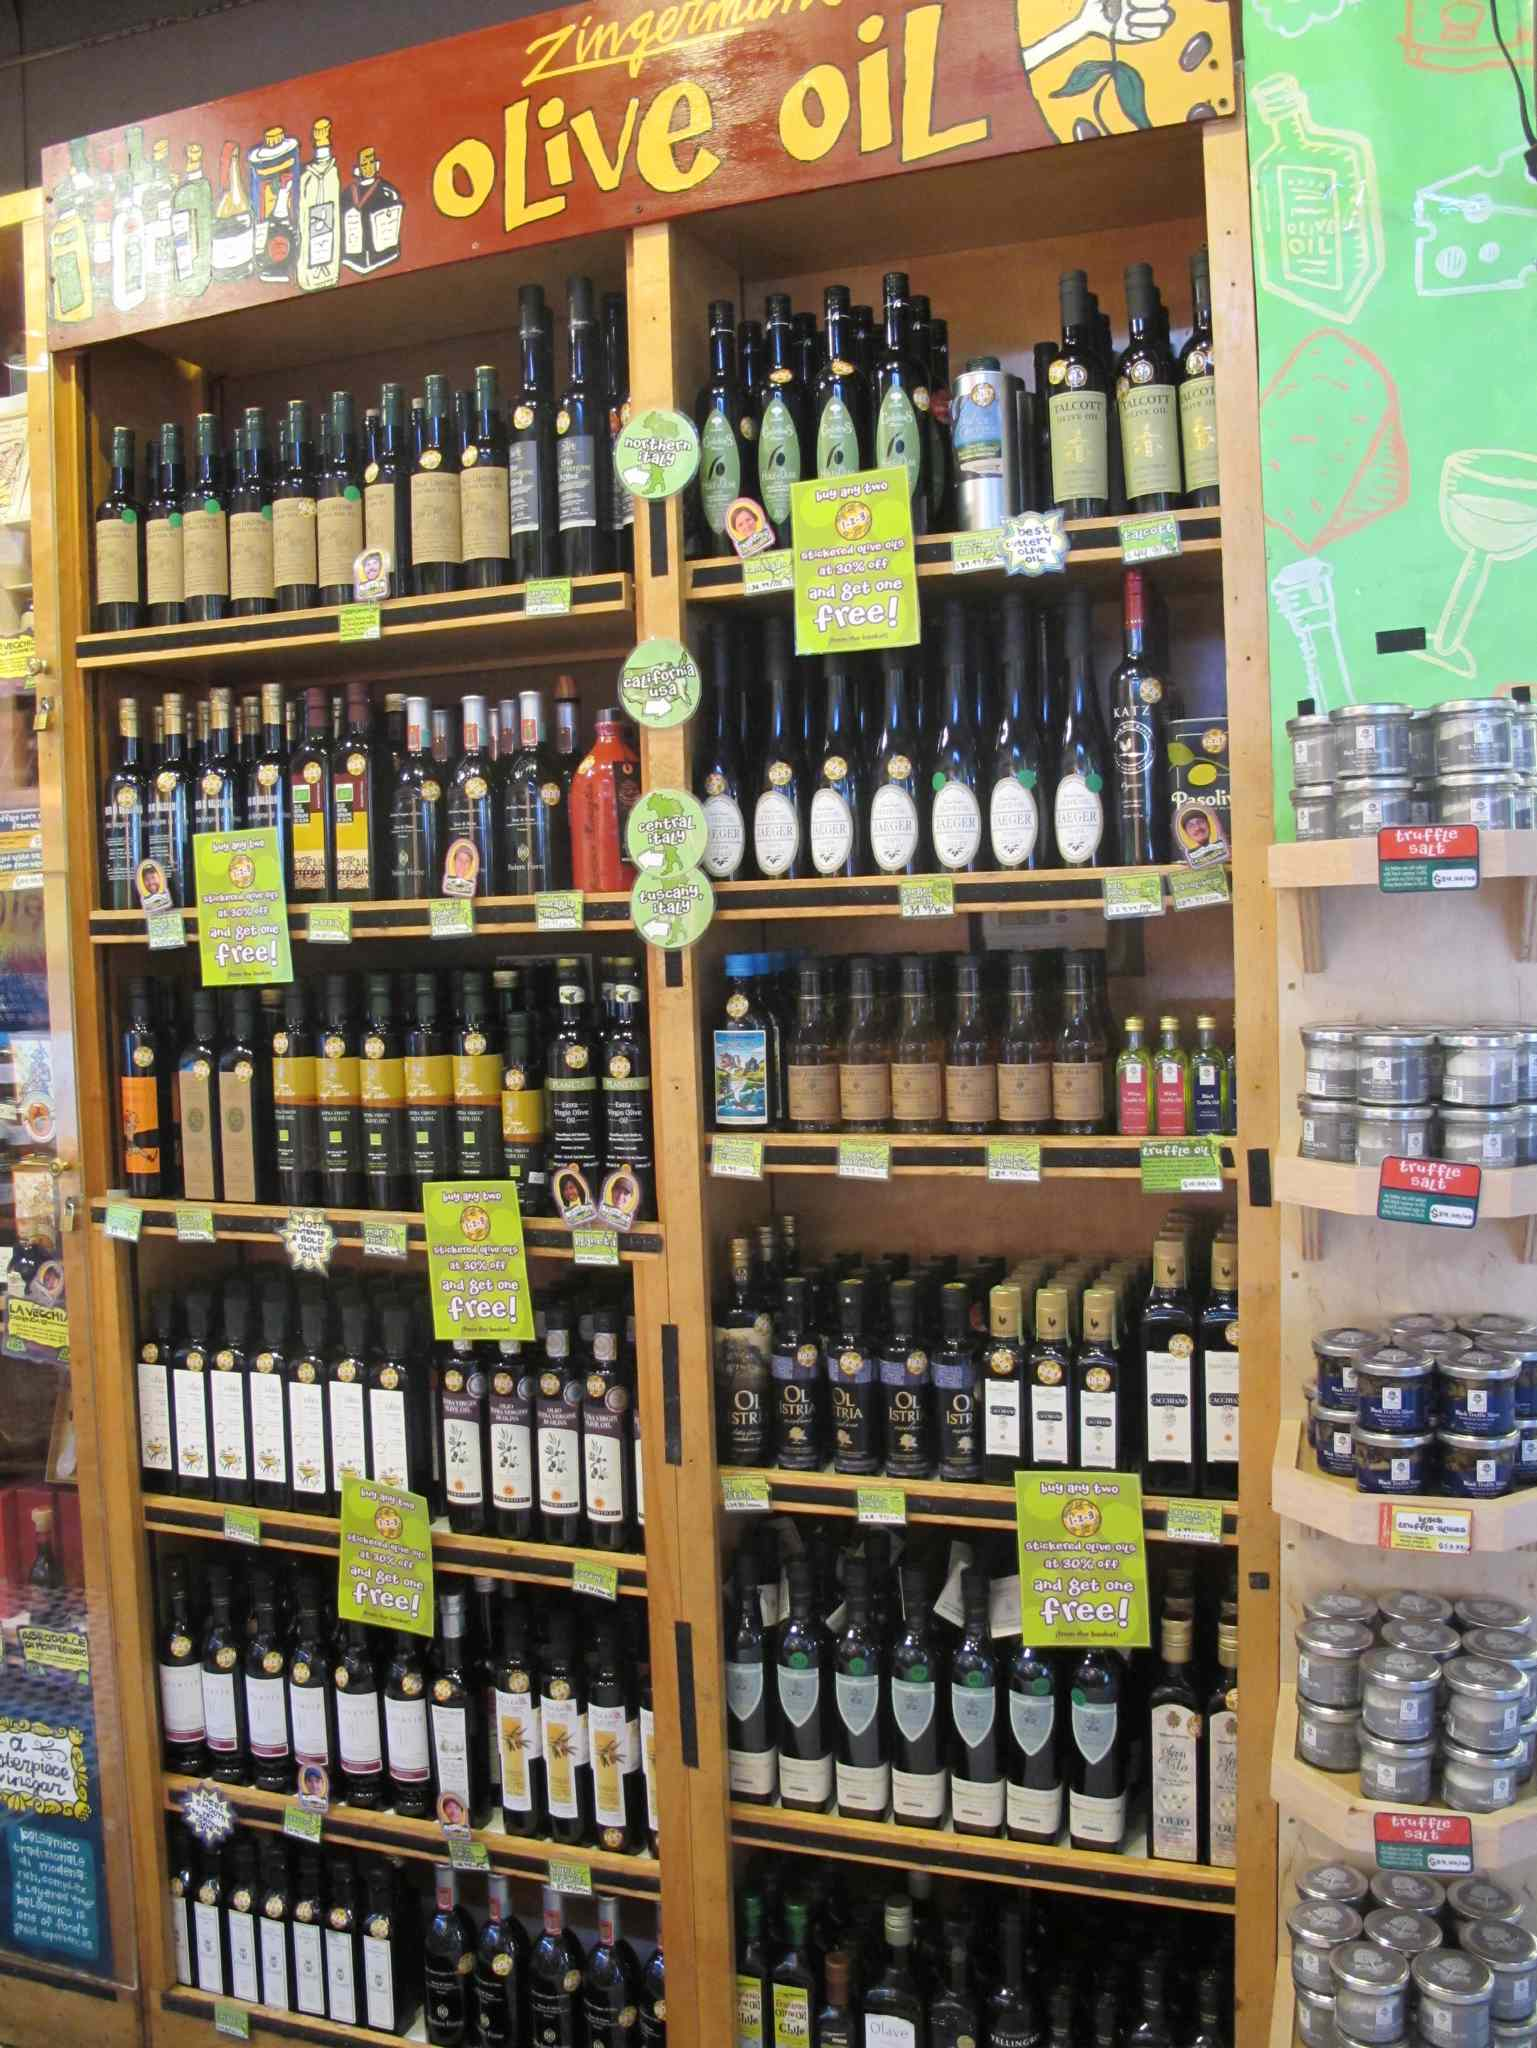 A selection of olive oils at Zingerman's.